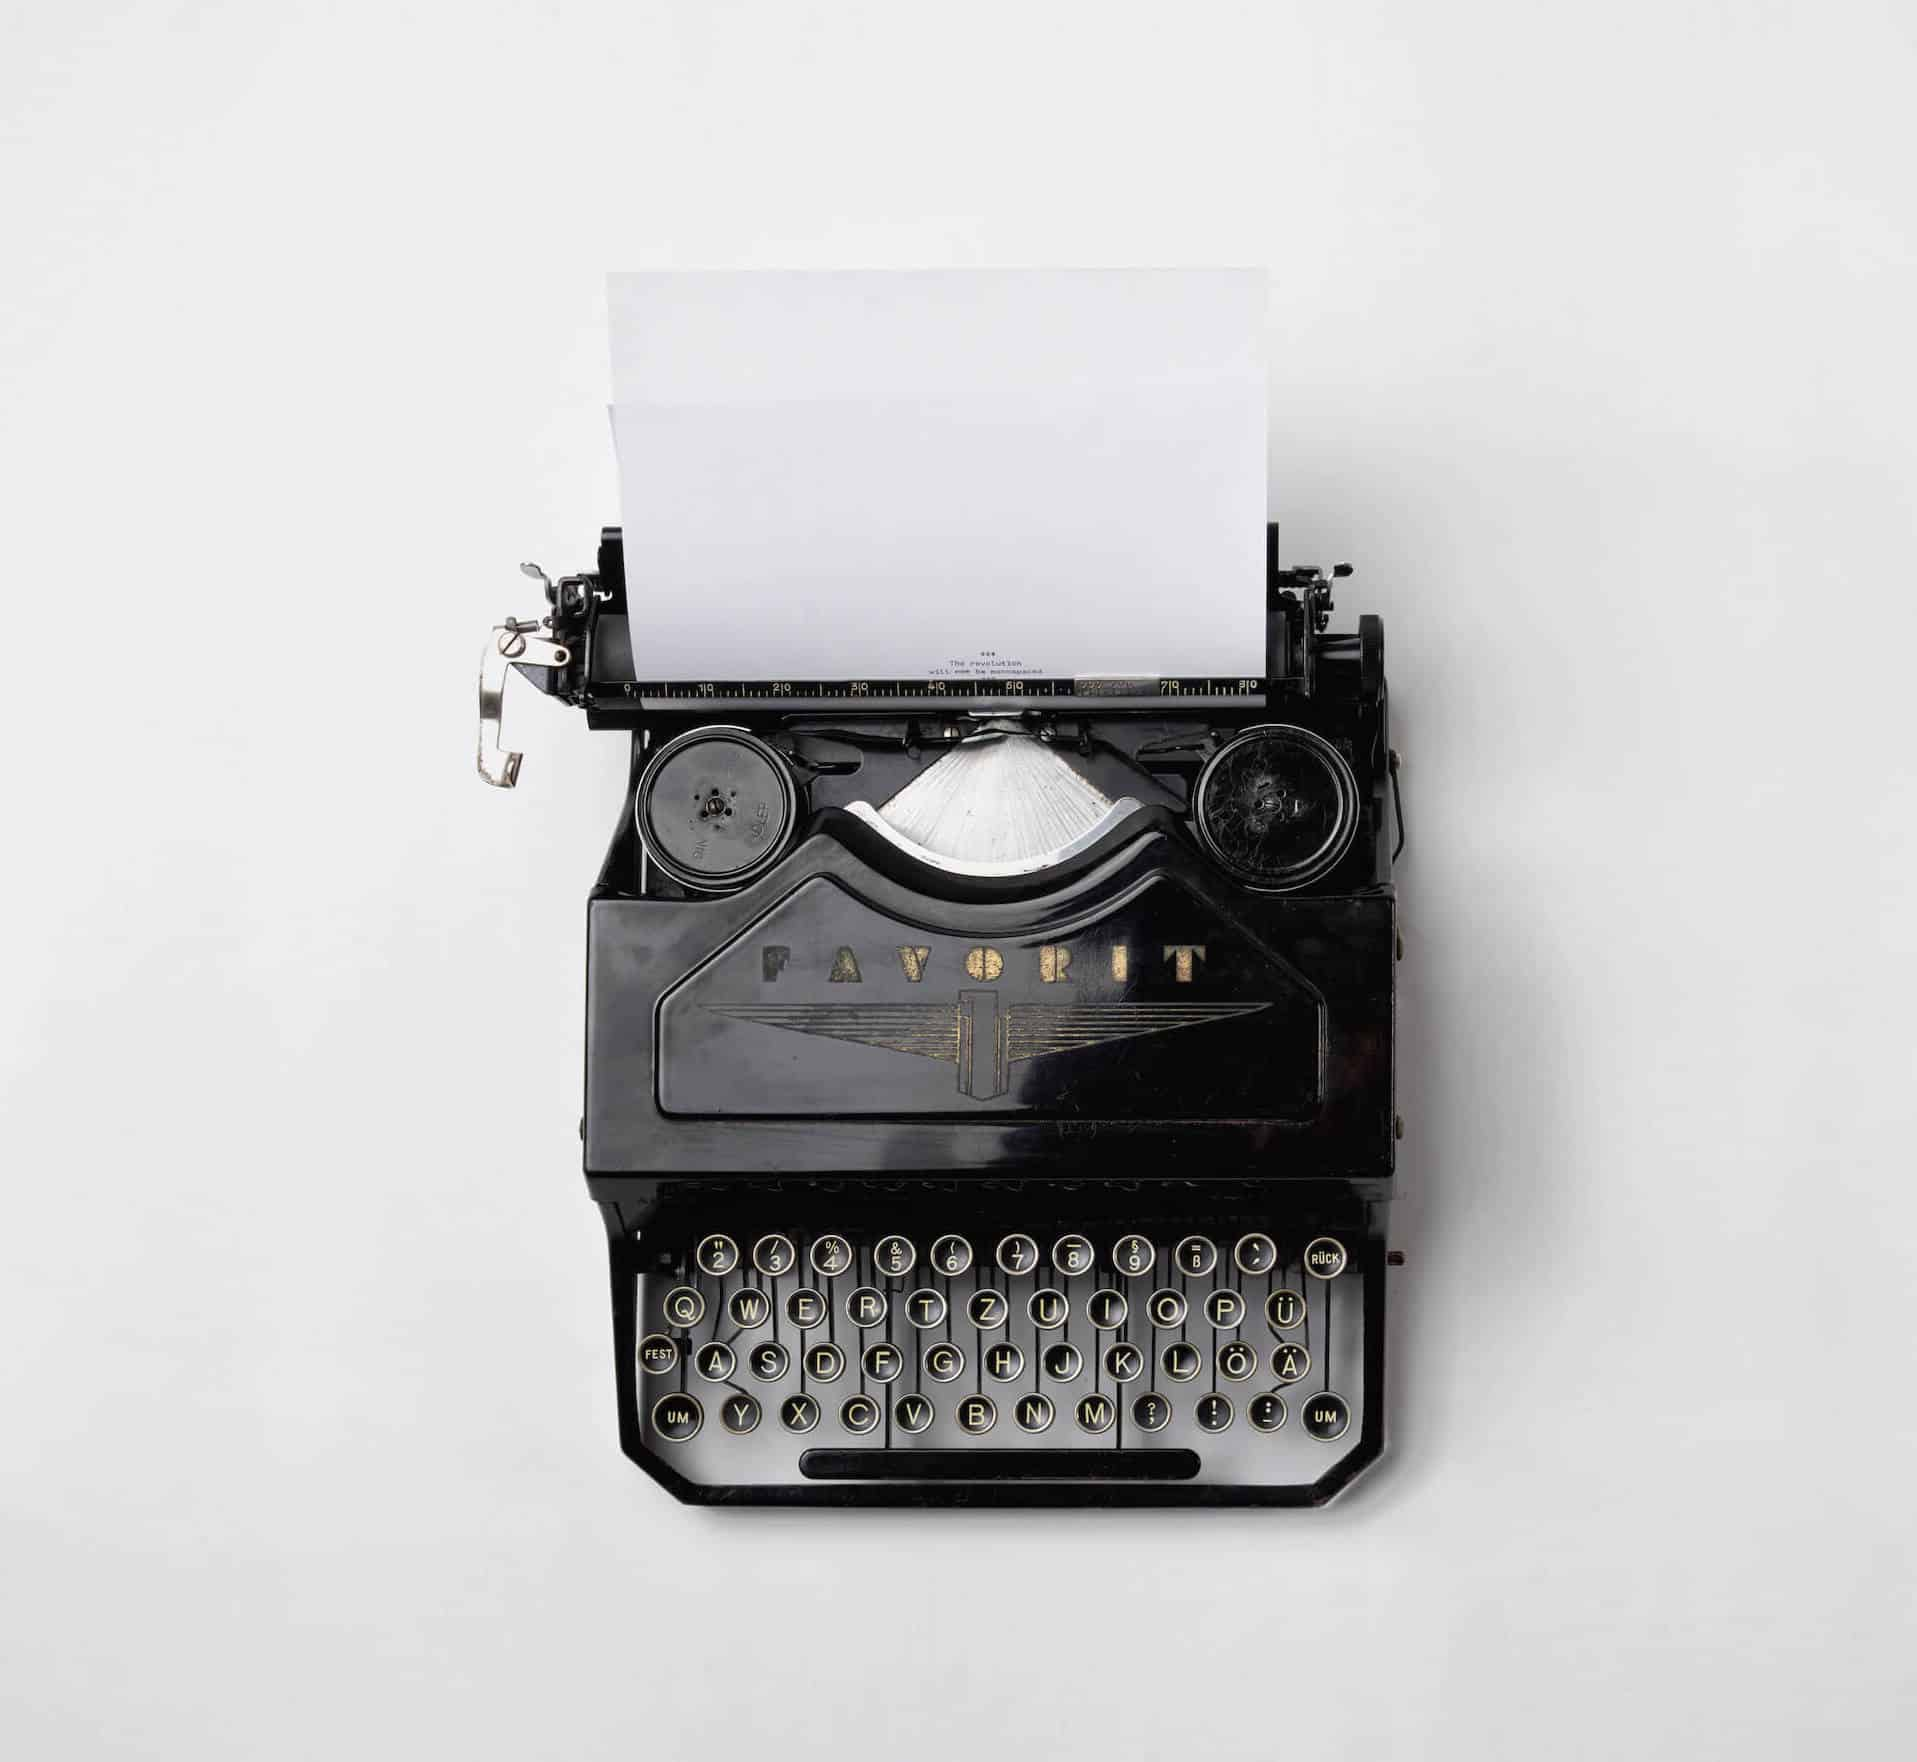 Old black typewriter on white background